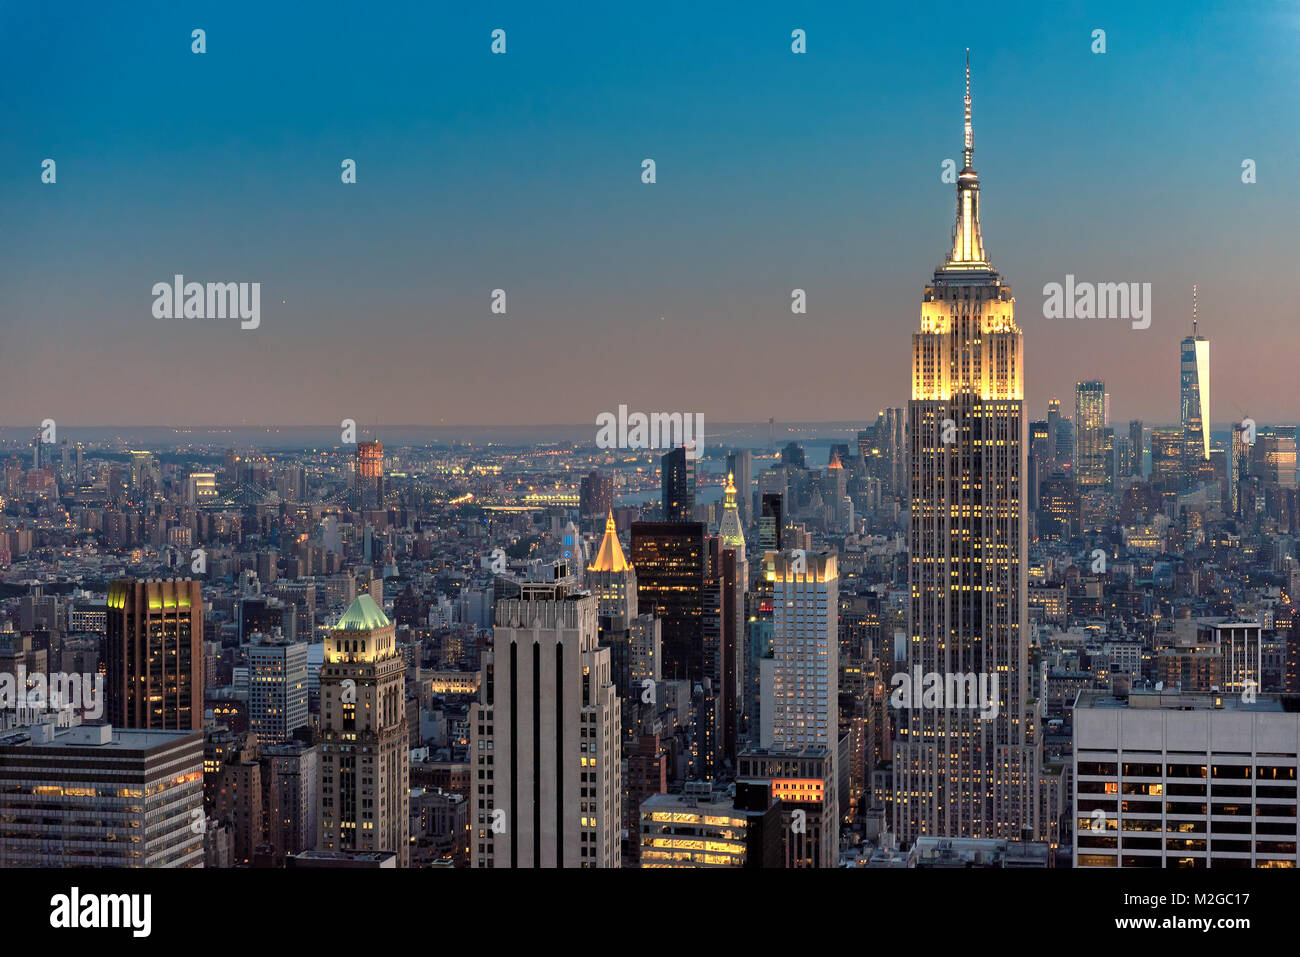 New York city skyline at sunset Photo Stock